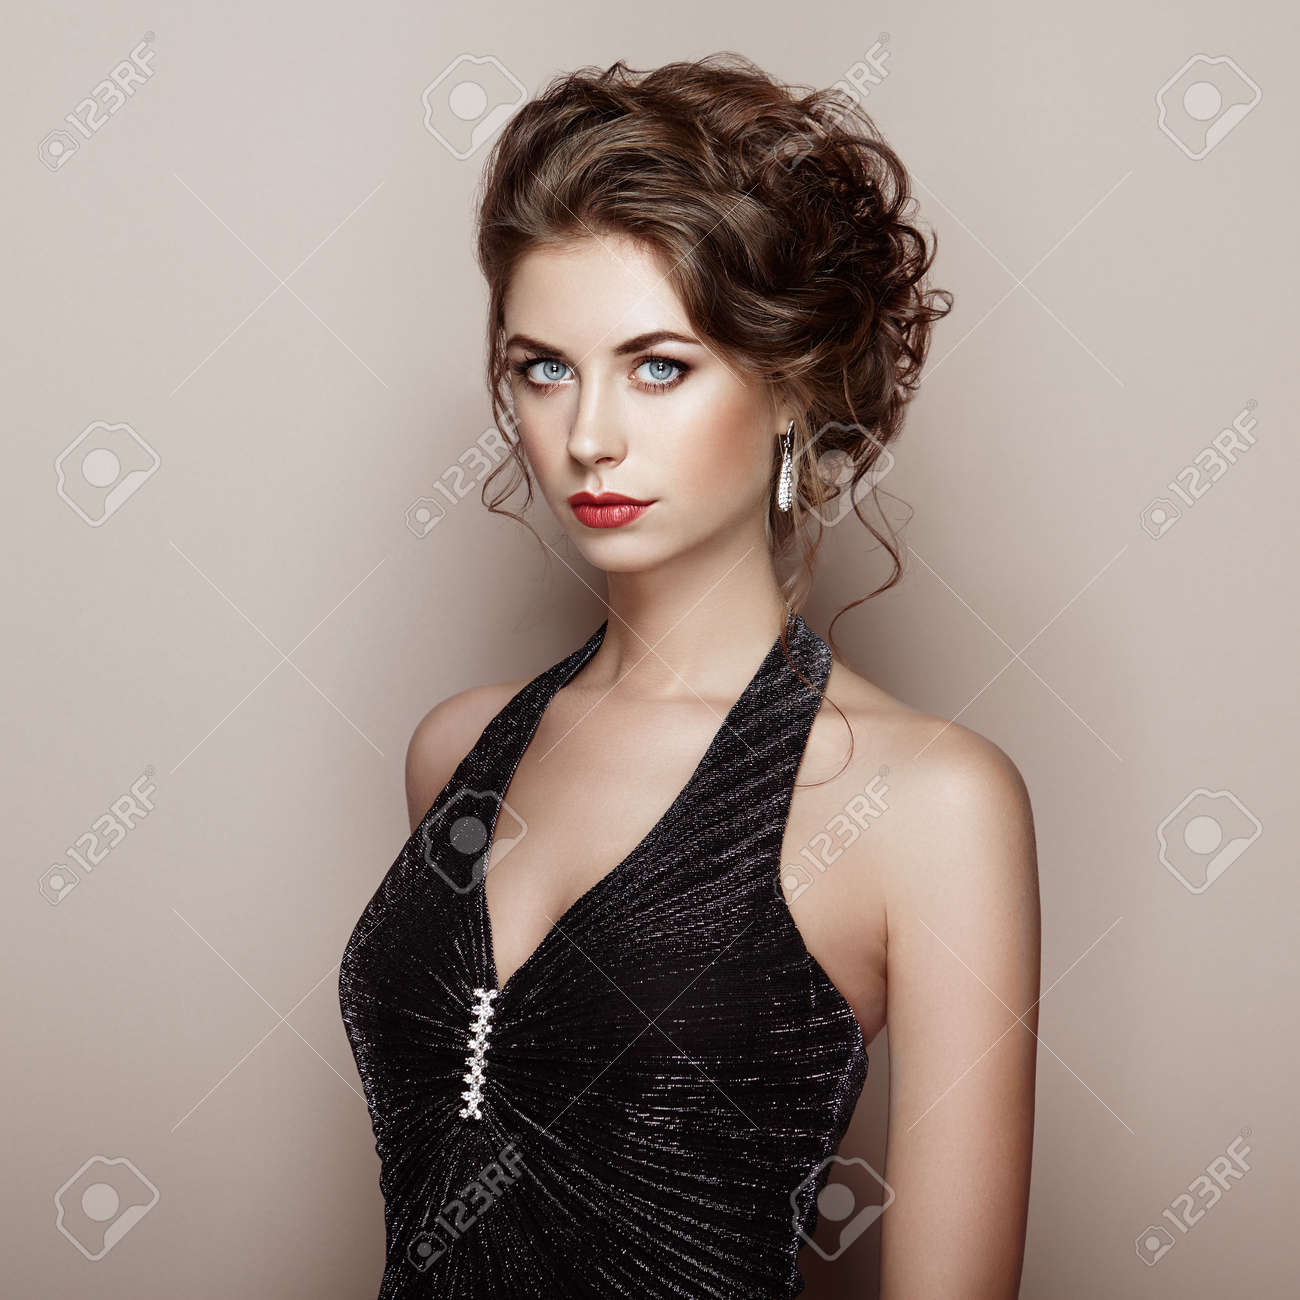 Fashion portrait of beautiful woman in elegant dress. Girl with elegant hairstyle and jewelry - 64357837